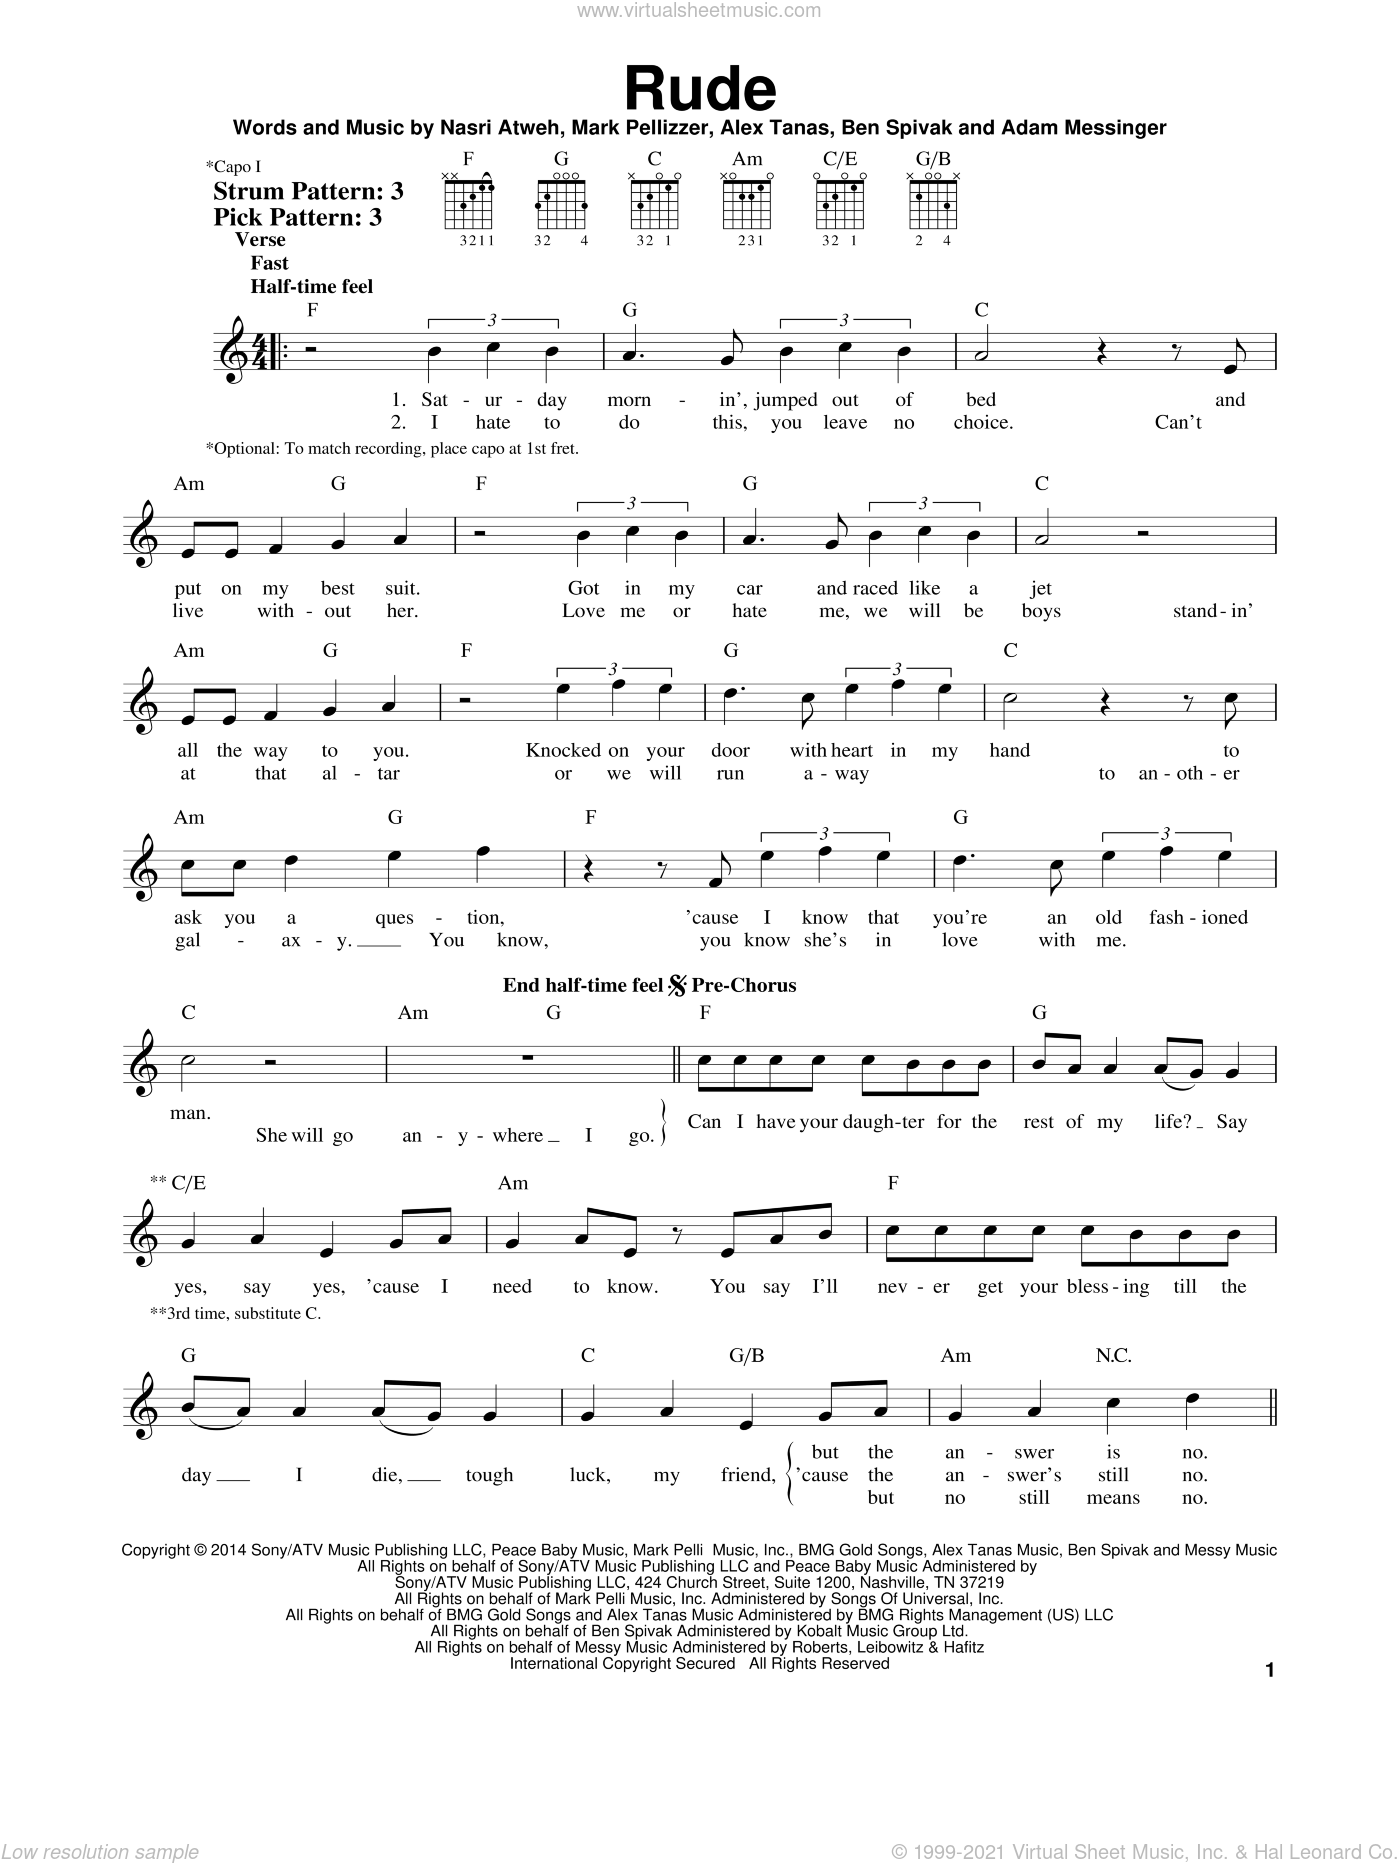 Rude sheet music for guitar solo (chords) by MAGIC!, Adam Messinger, Alex Tanas, Ben Spivak, Mark Pellizzer and Nasri Atweh, easy guitar (chords)